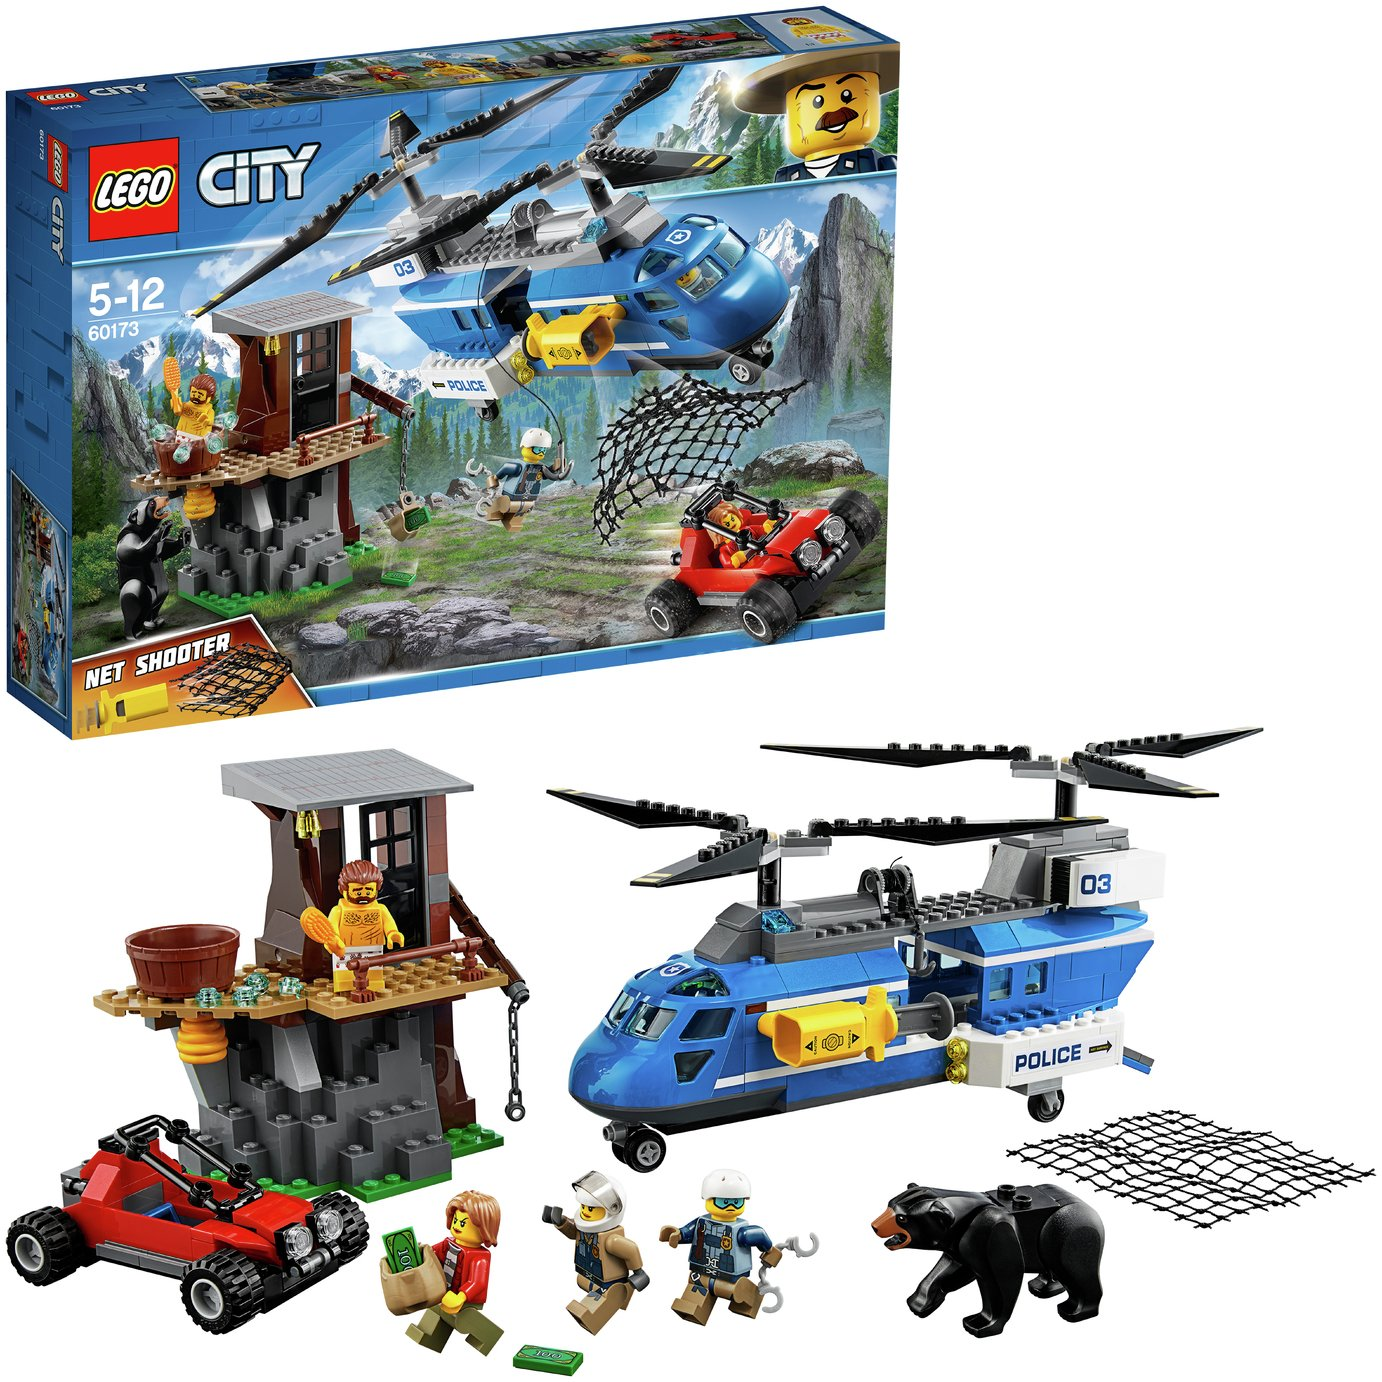 LEGO City Police Mountain Arrest Toy Helicopter - 60173